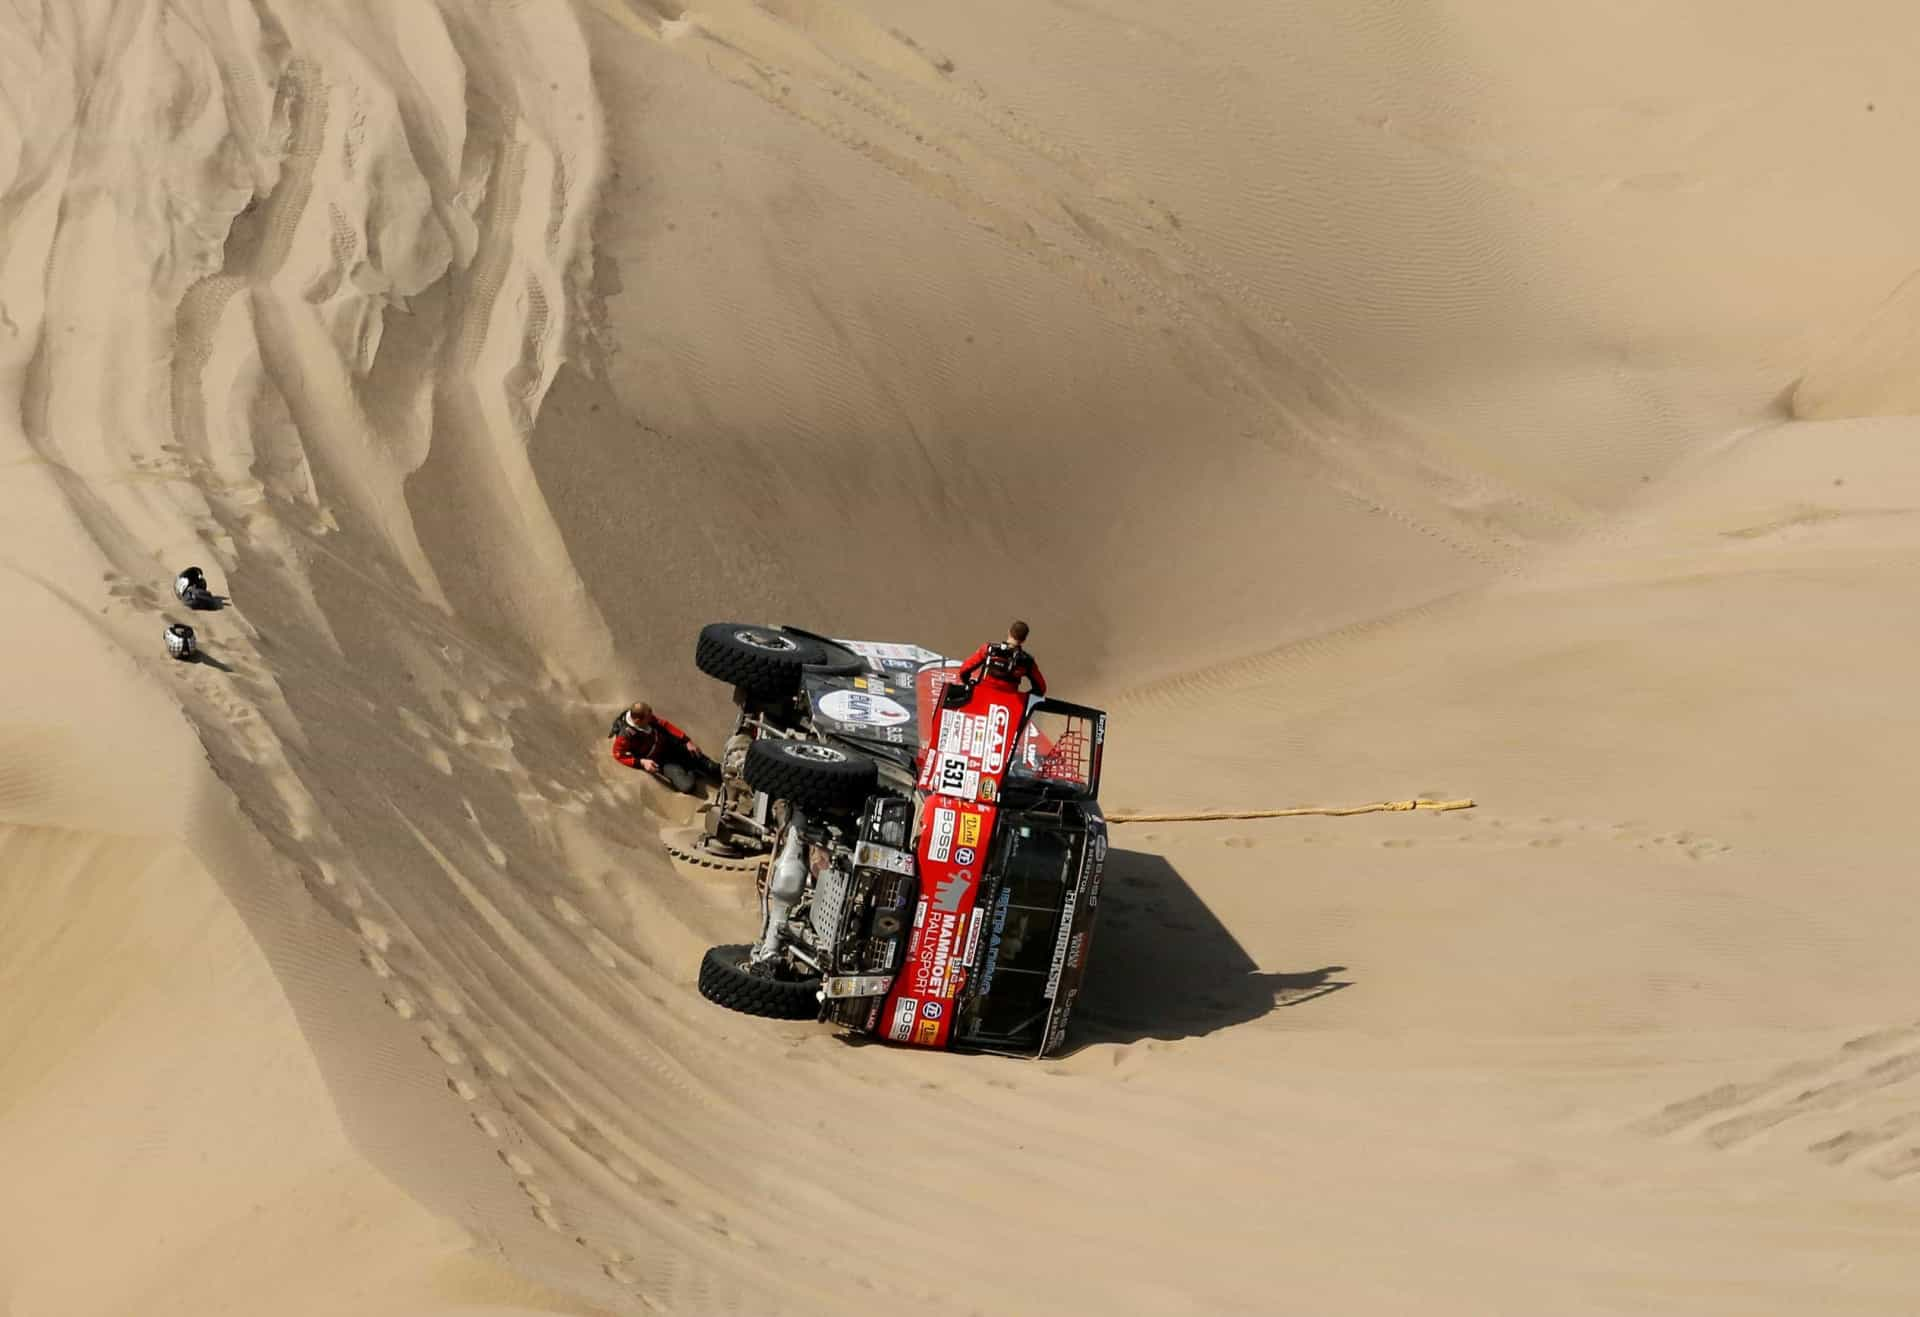 Dakar 2018: veja as fotos do maior e mais perigoso rally do mundo